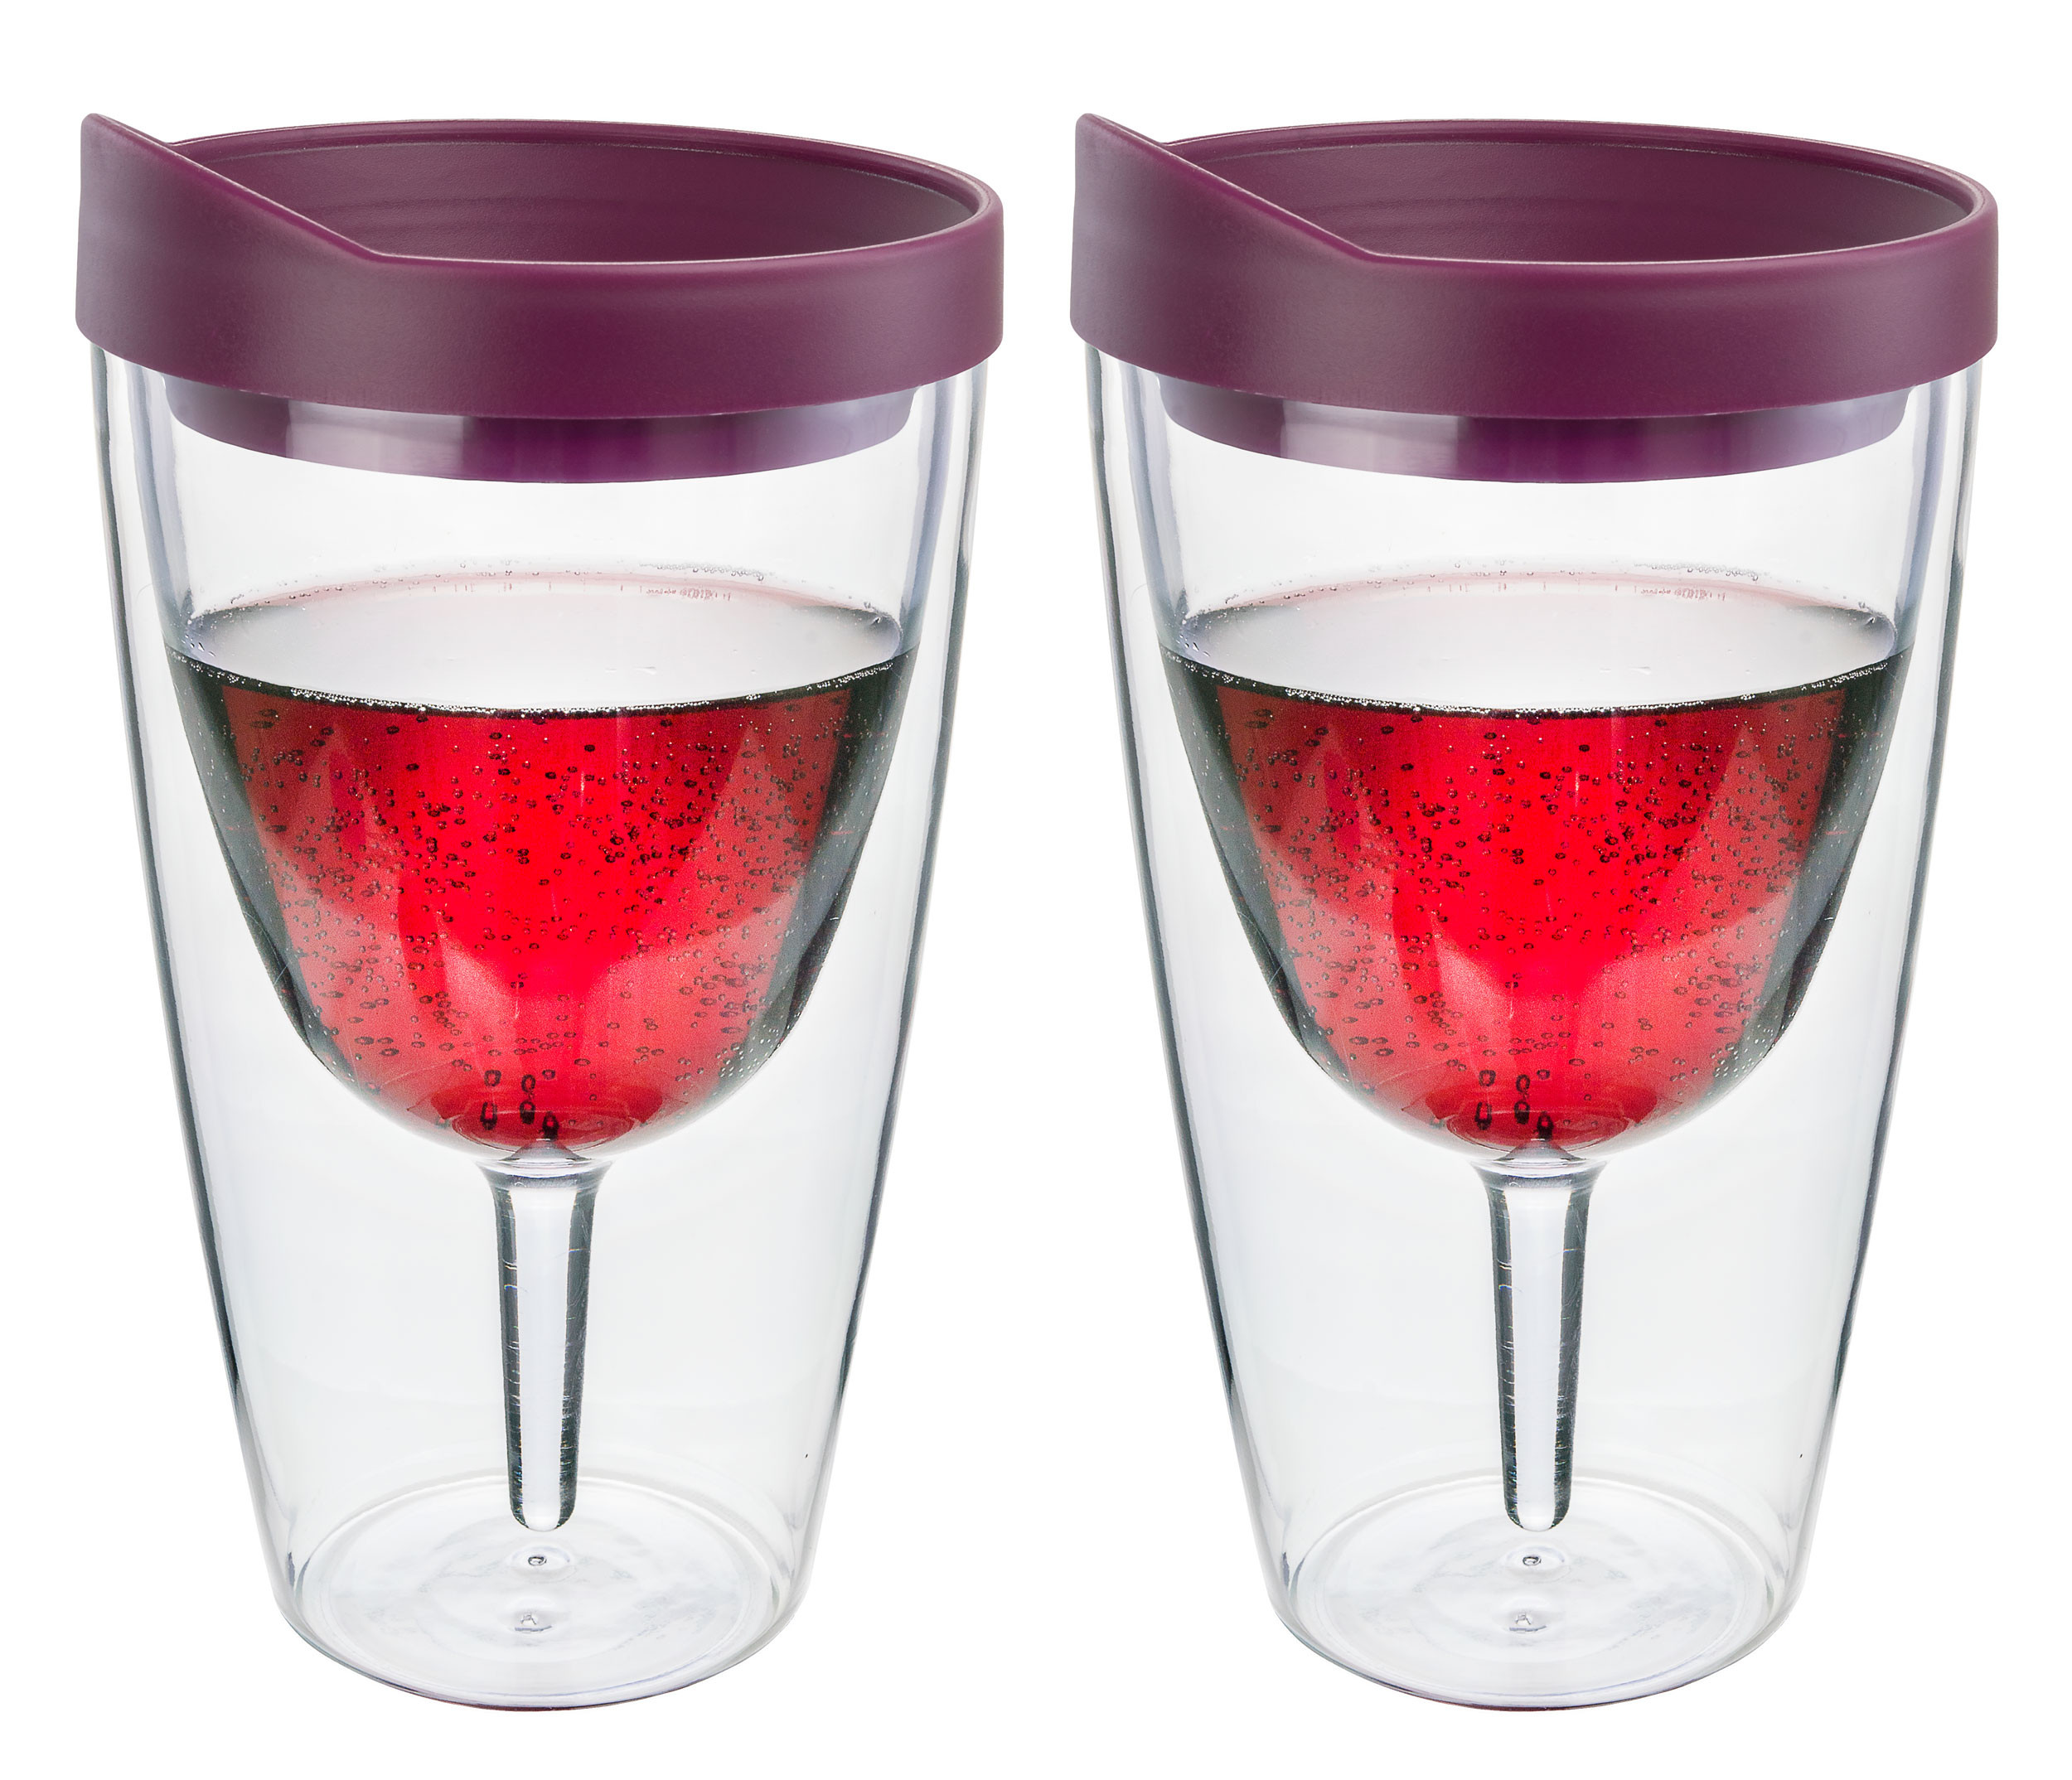 Merlot Insulated Wine Tumbler - Double Wall Acrylic 2 Pack